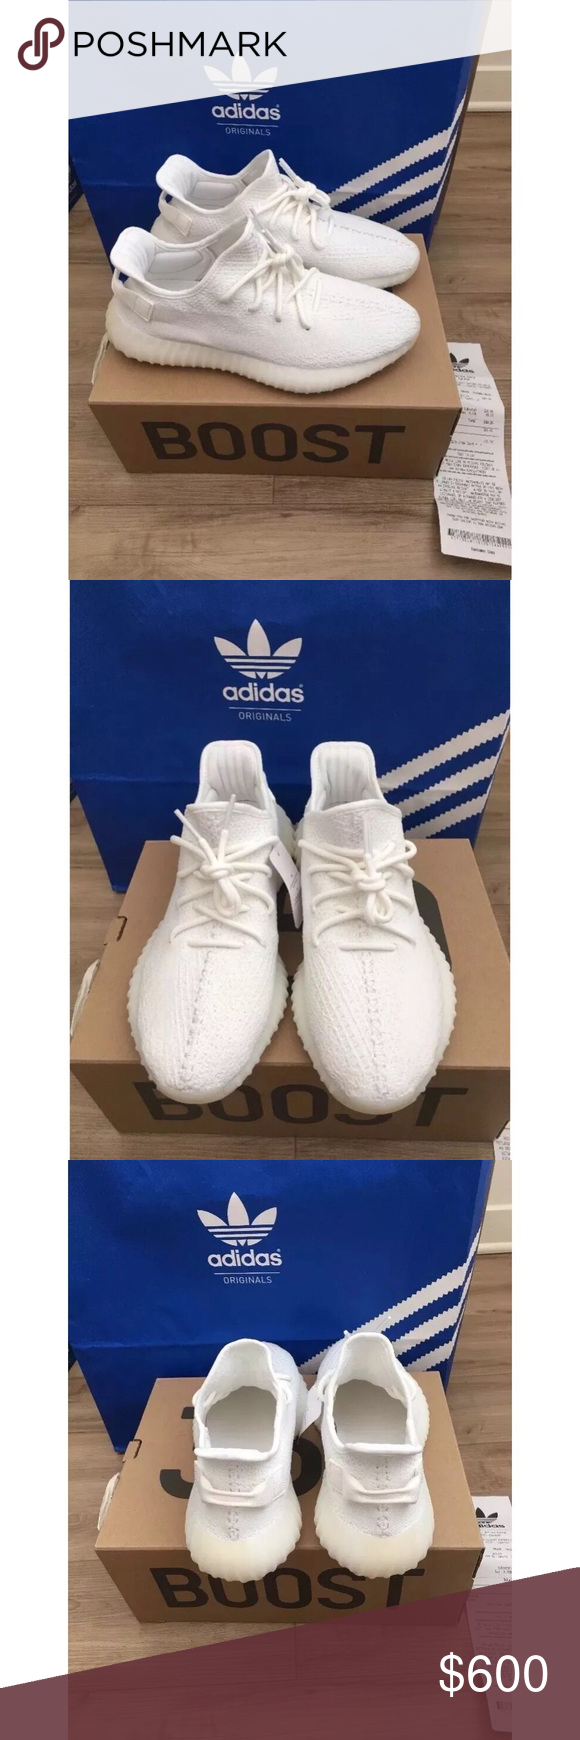 6ea2fbd1f09b4 Yeezy Boost Triple White 100% AUTHENTIC DS New in box. Guaranteed 100%  authentic